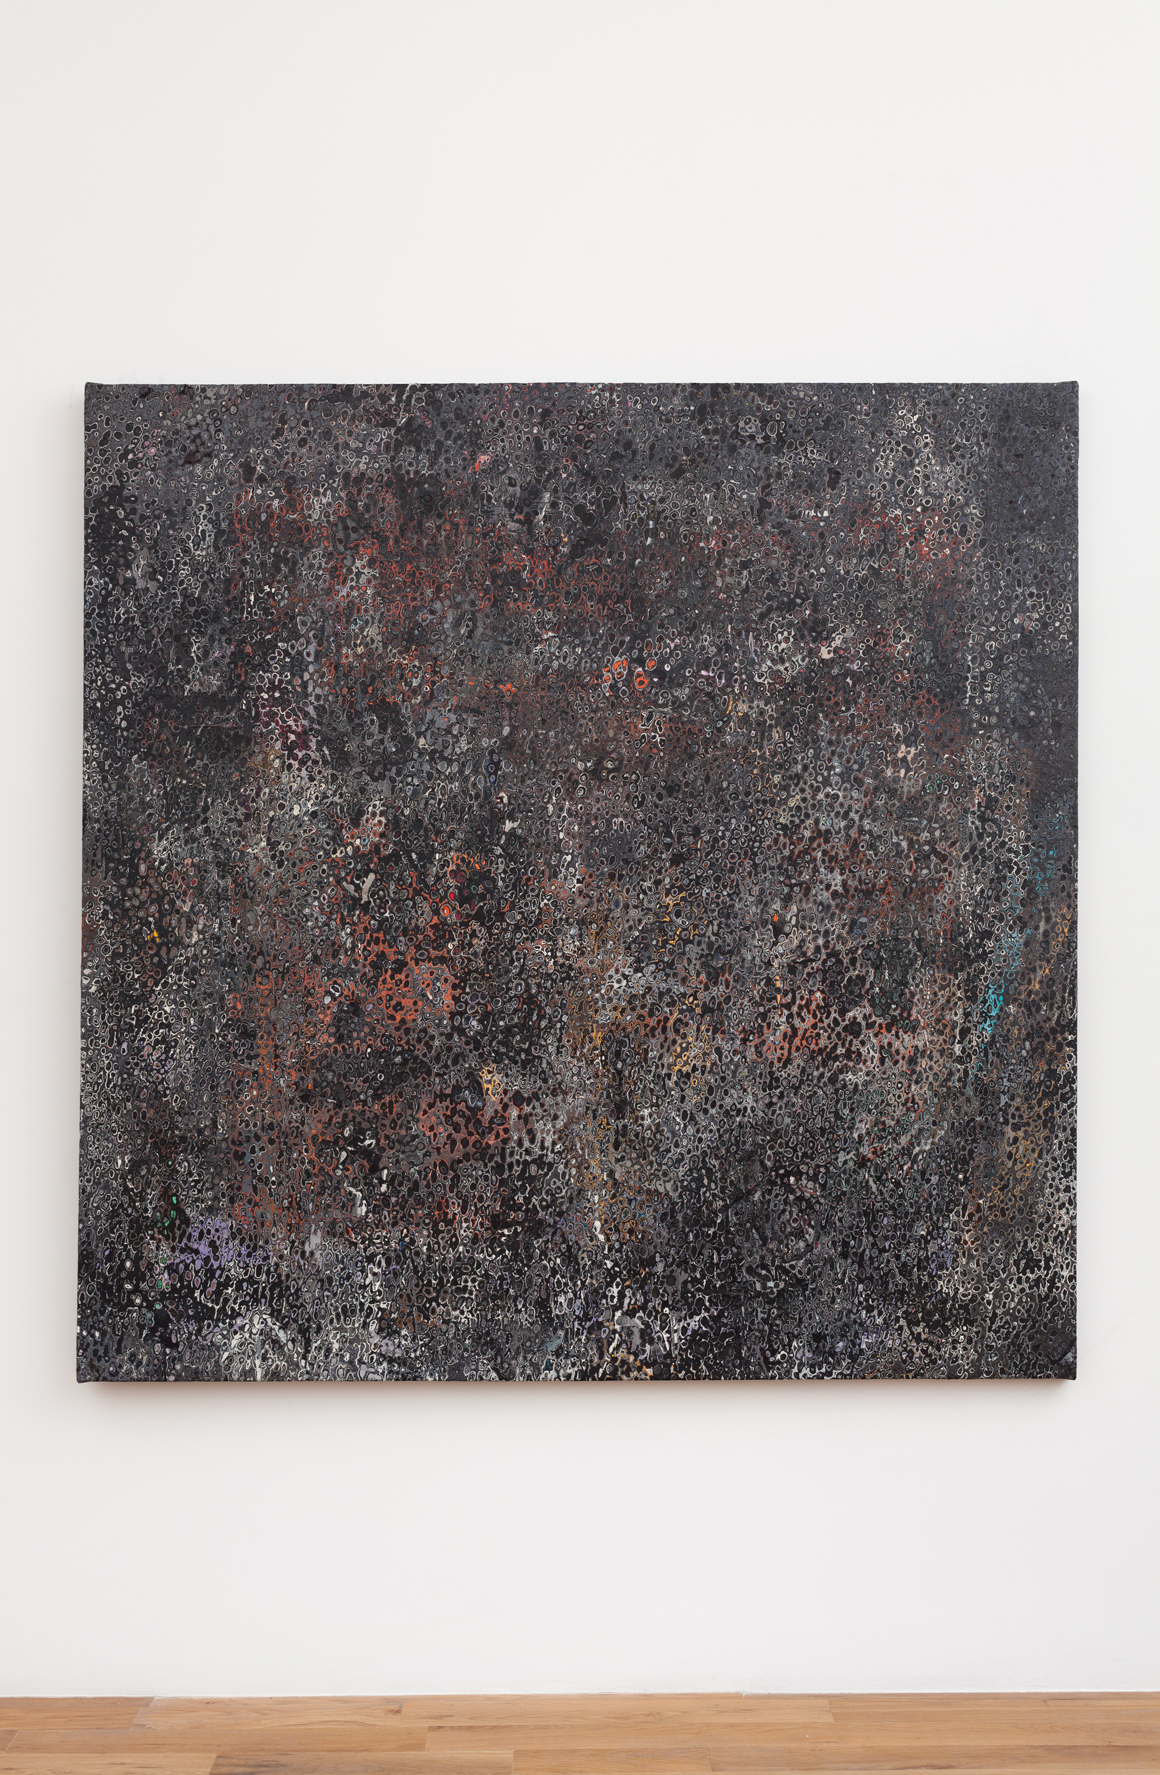 <p><em>Artforum September 1965</em><span class='media'>Acrylic on canvas</span>63 x 63 in (160 x 160 cm)<br>2016<br></p>